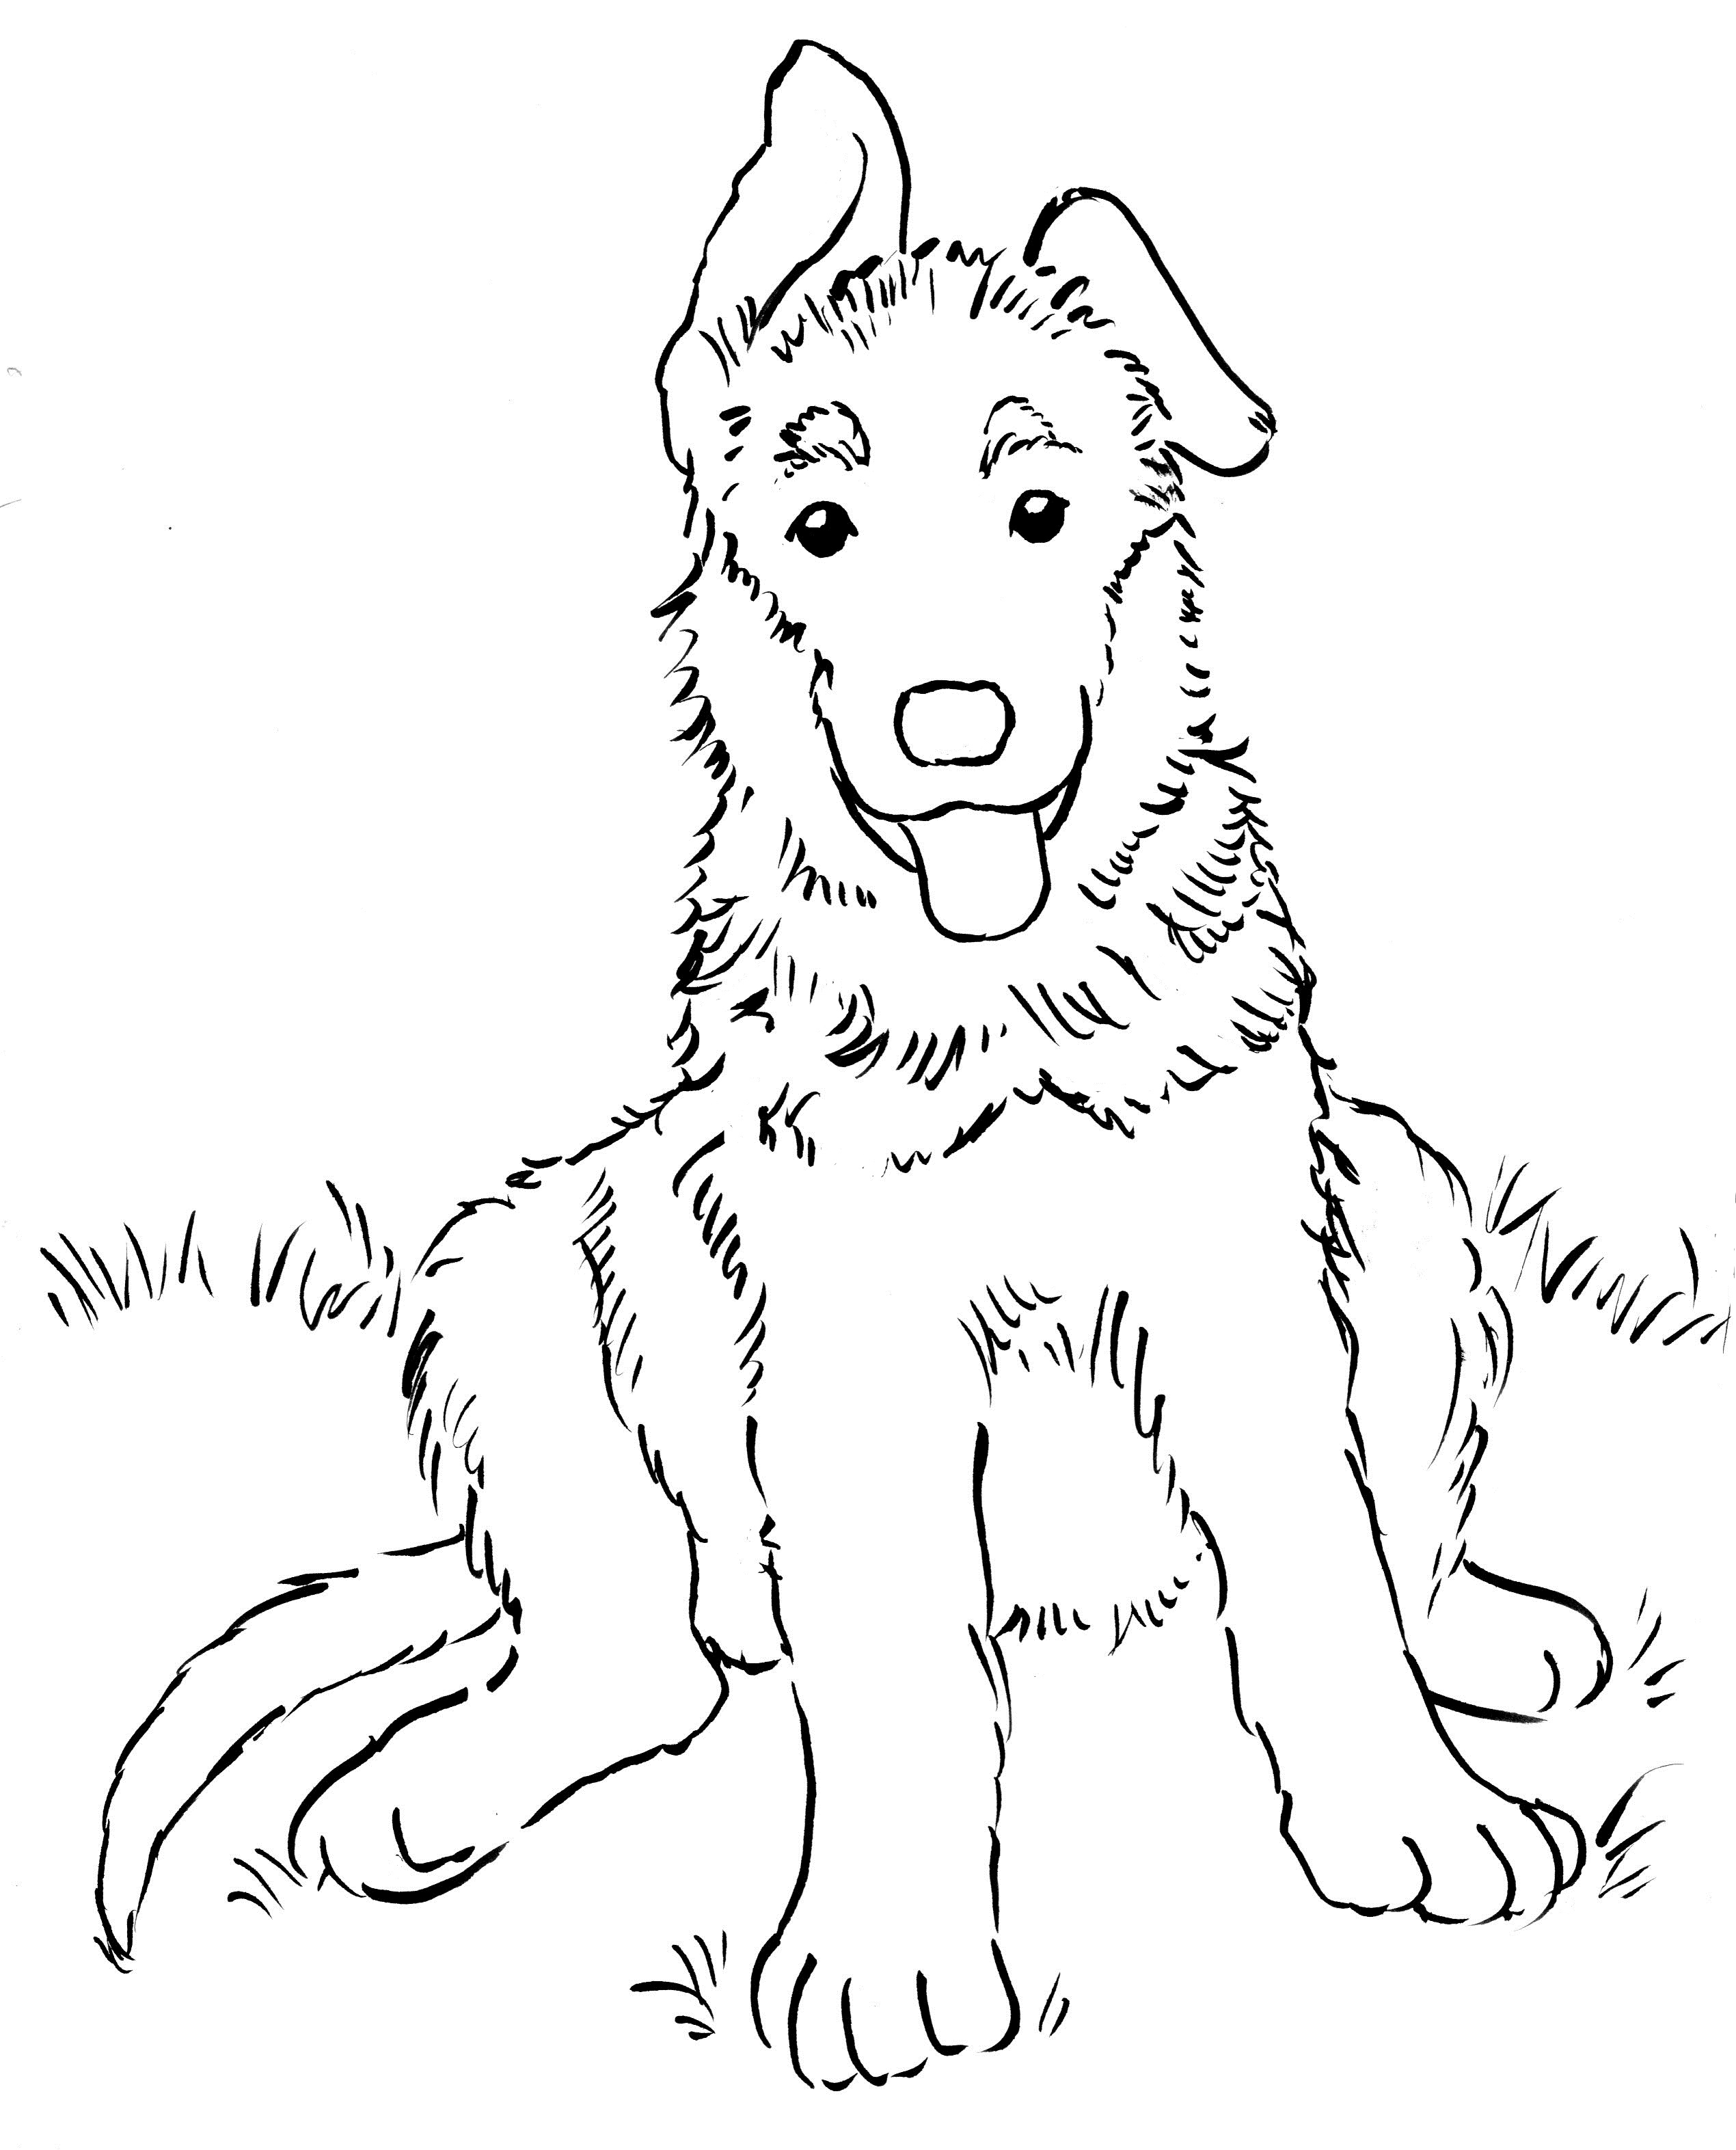 german shepherd puppy coloring pages dog breed coloring pages shepherd pages puppy german coloring